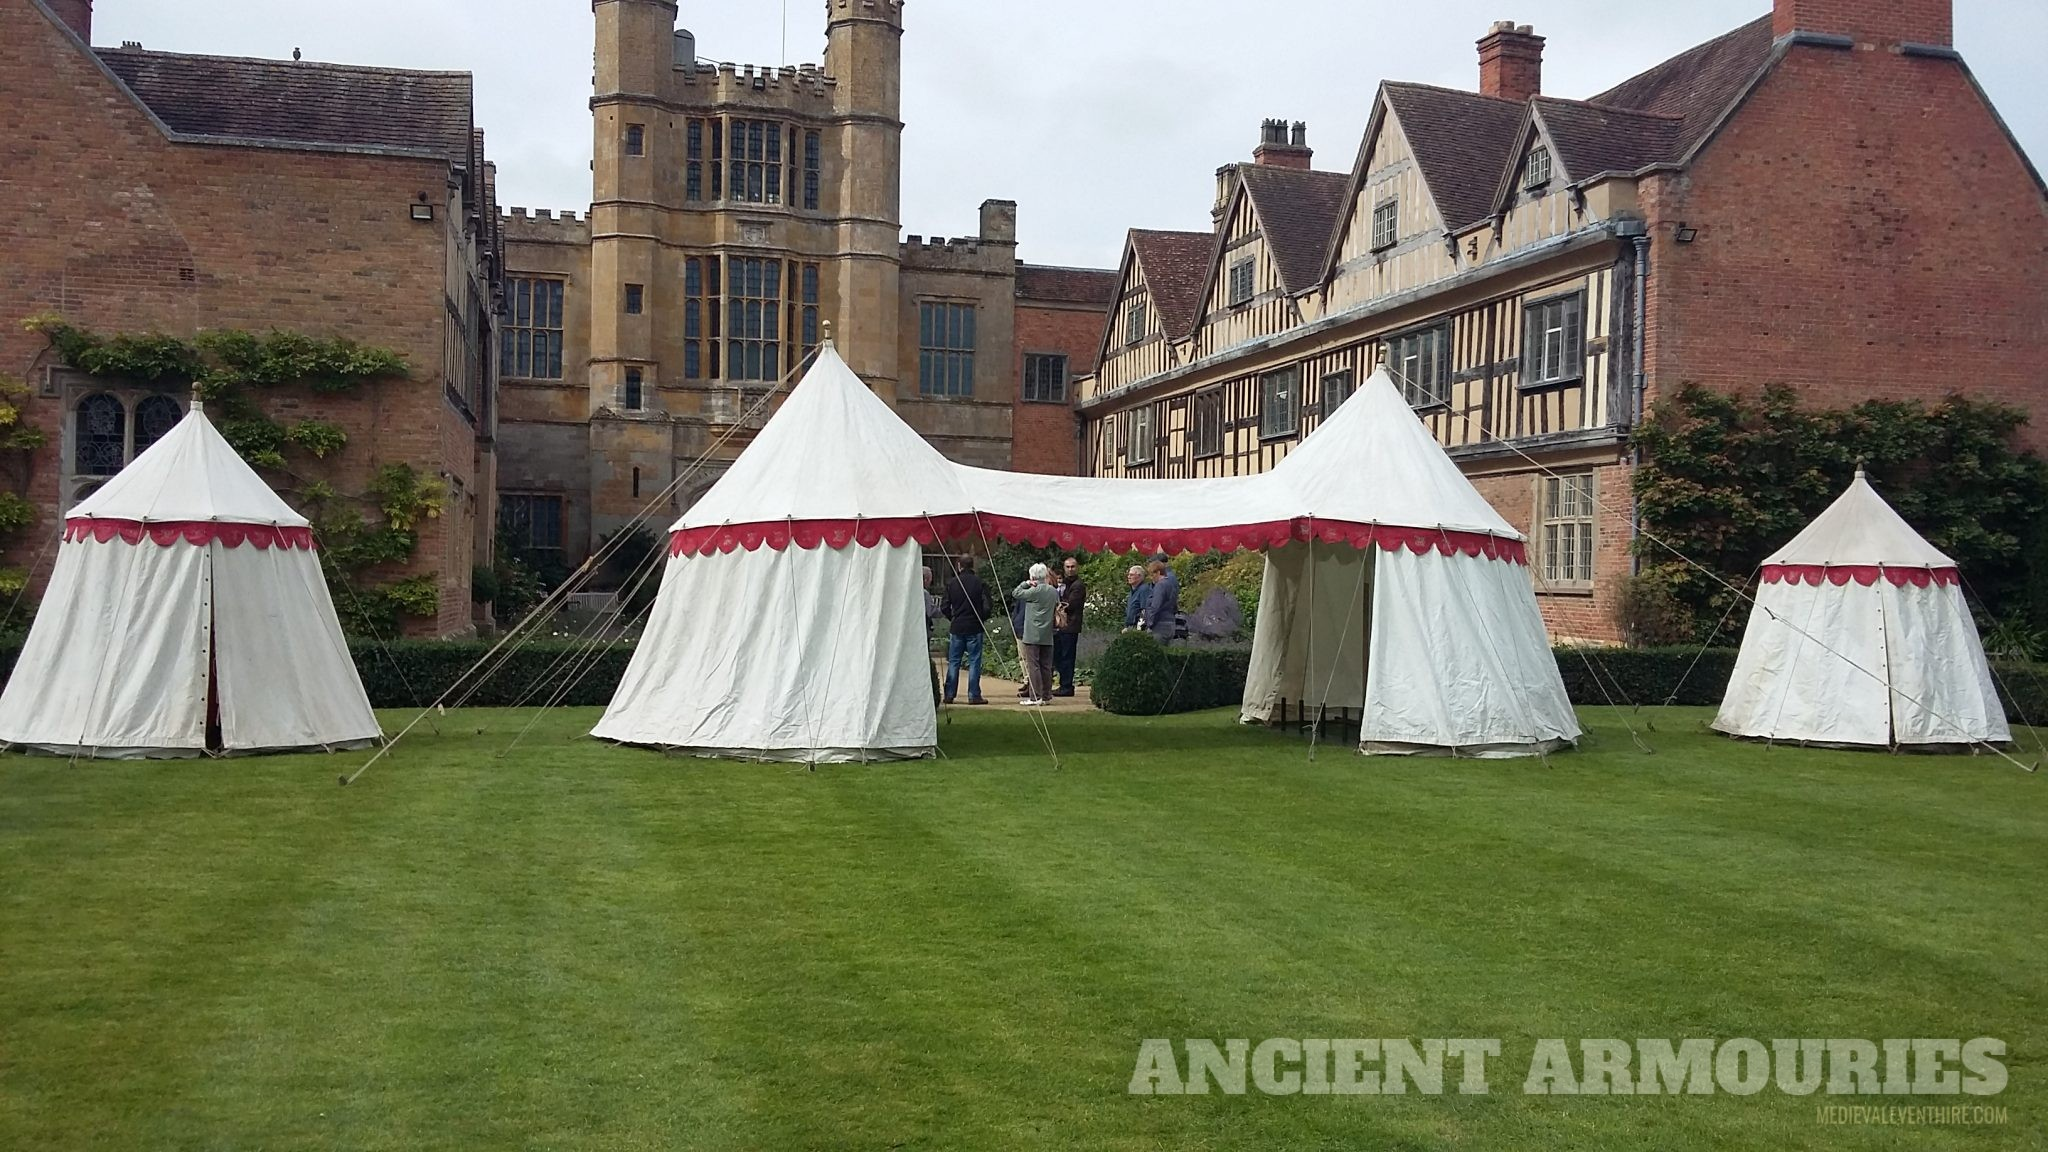 Tents and Archery Range & Medieval Tent u0026 Marquee Hire